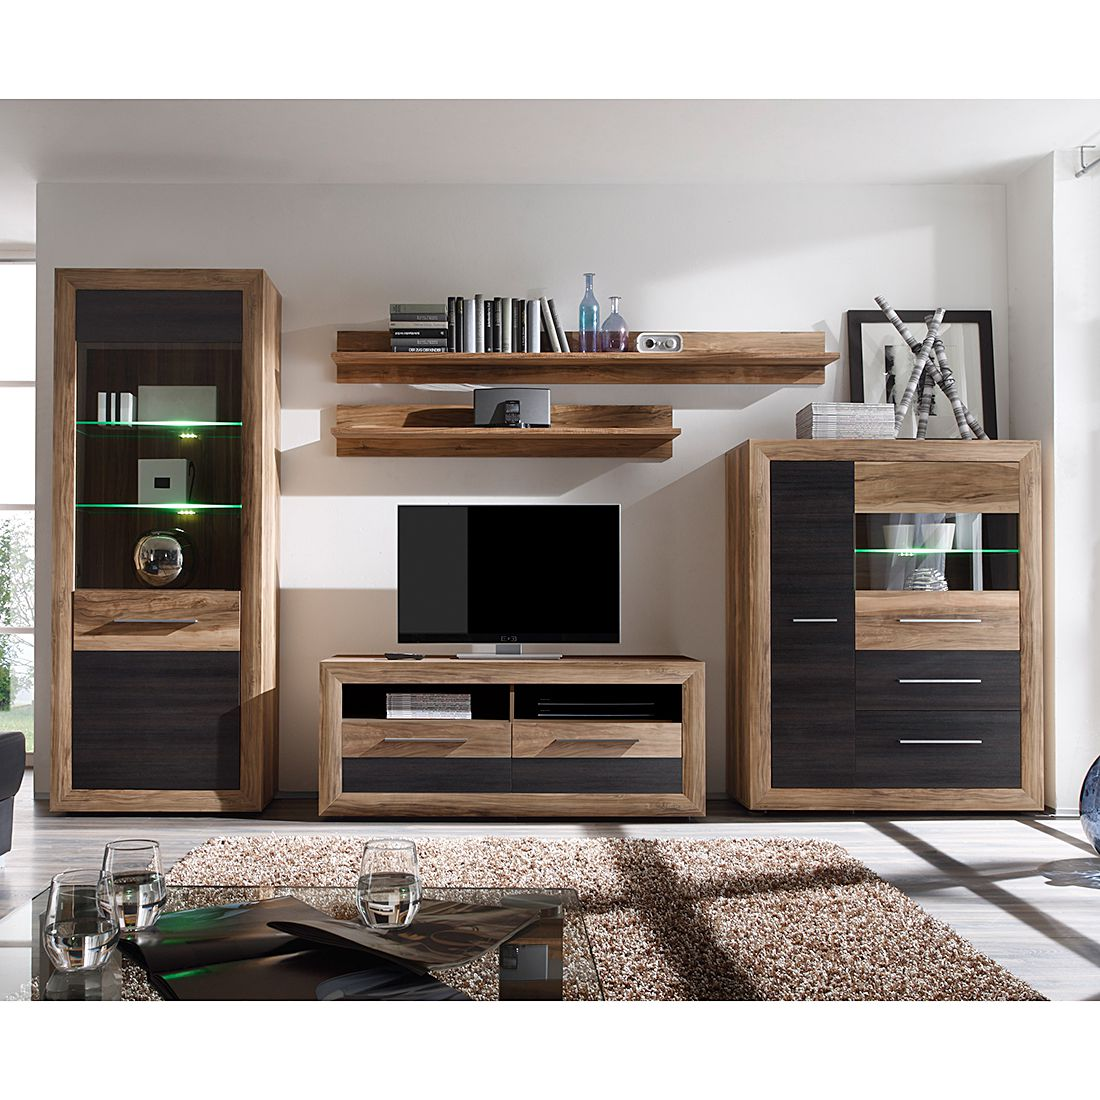 Meuble Tv San Francisco Laque Blanc Brillant Artzein Com # Meuble Living Blanc Laque Brillant